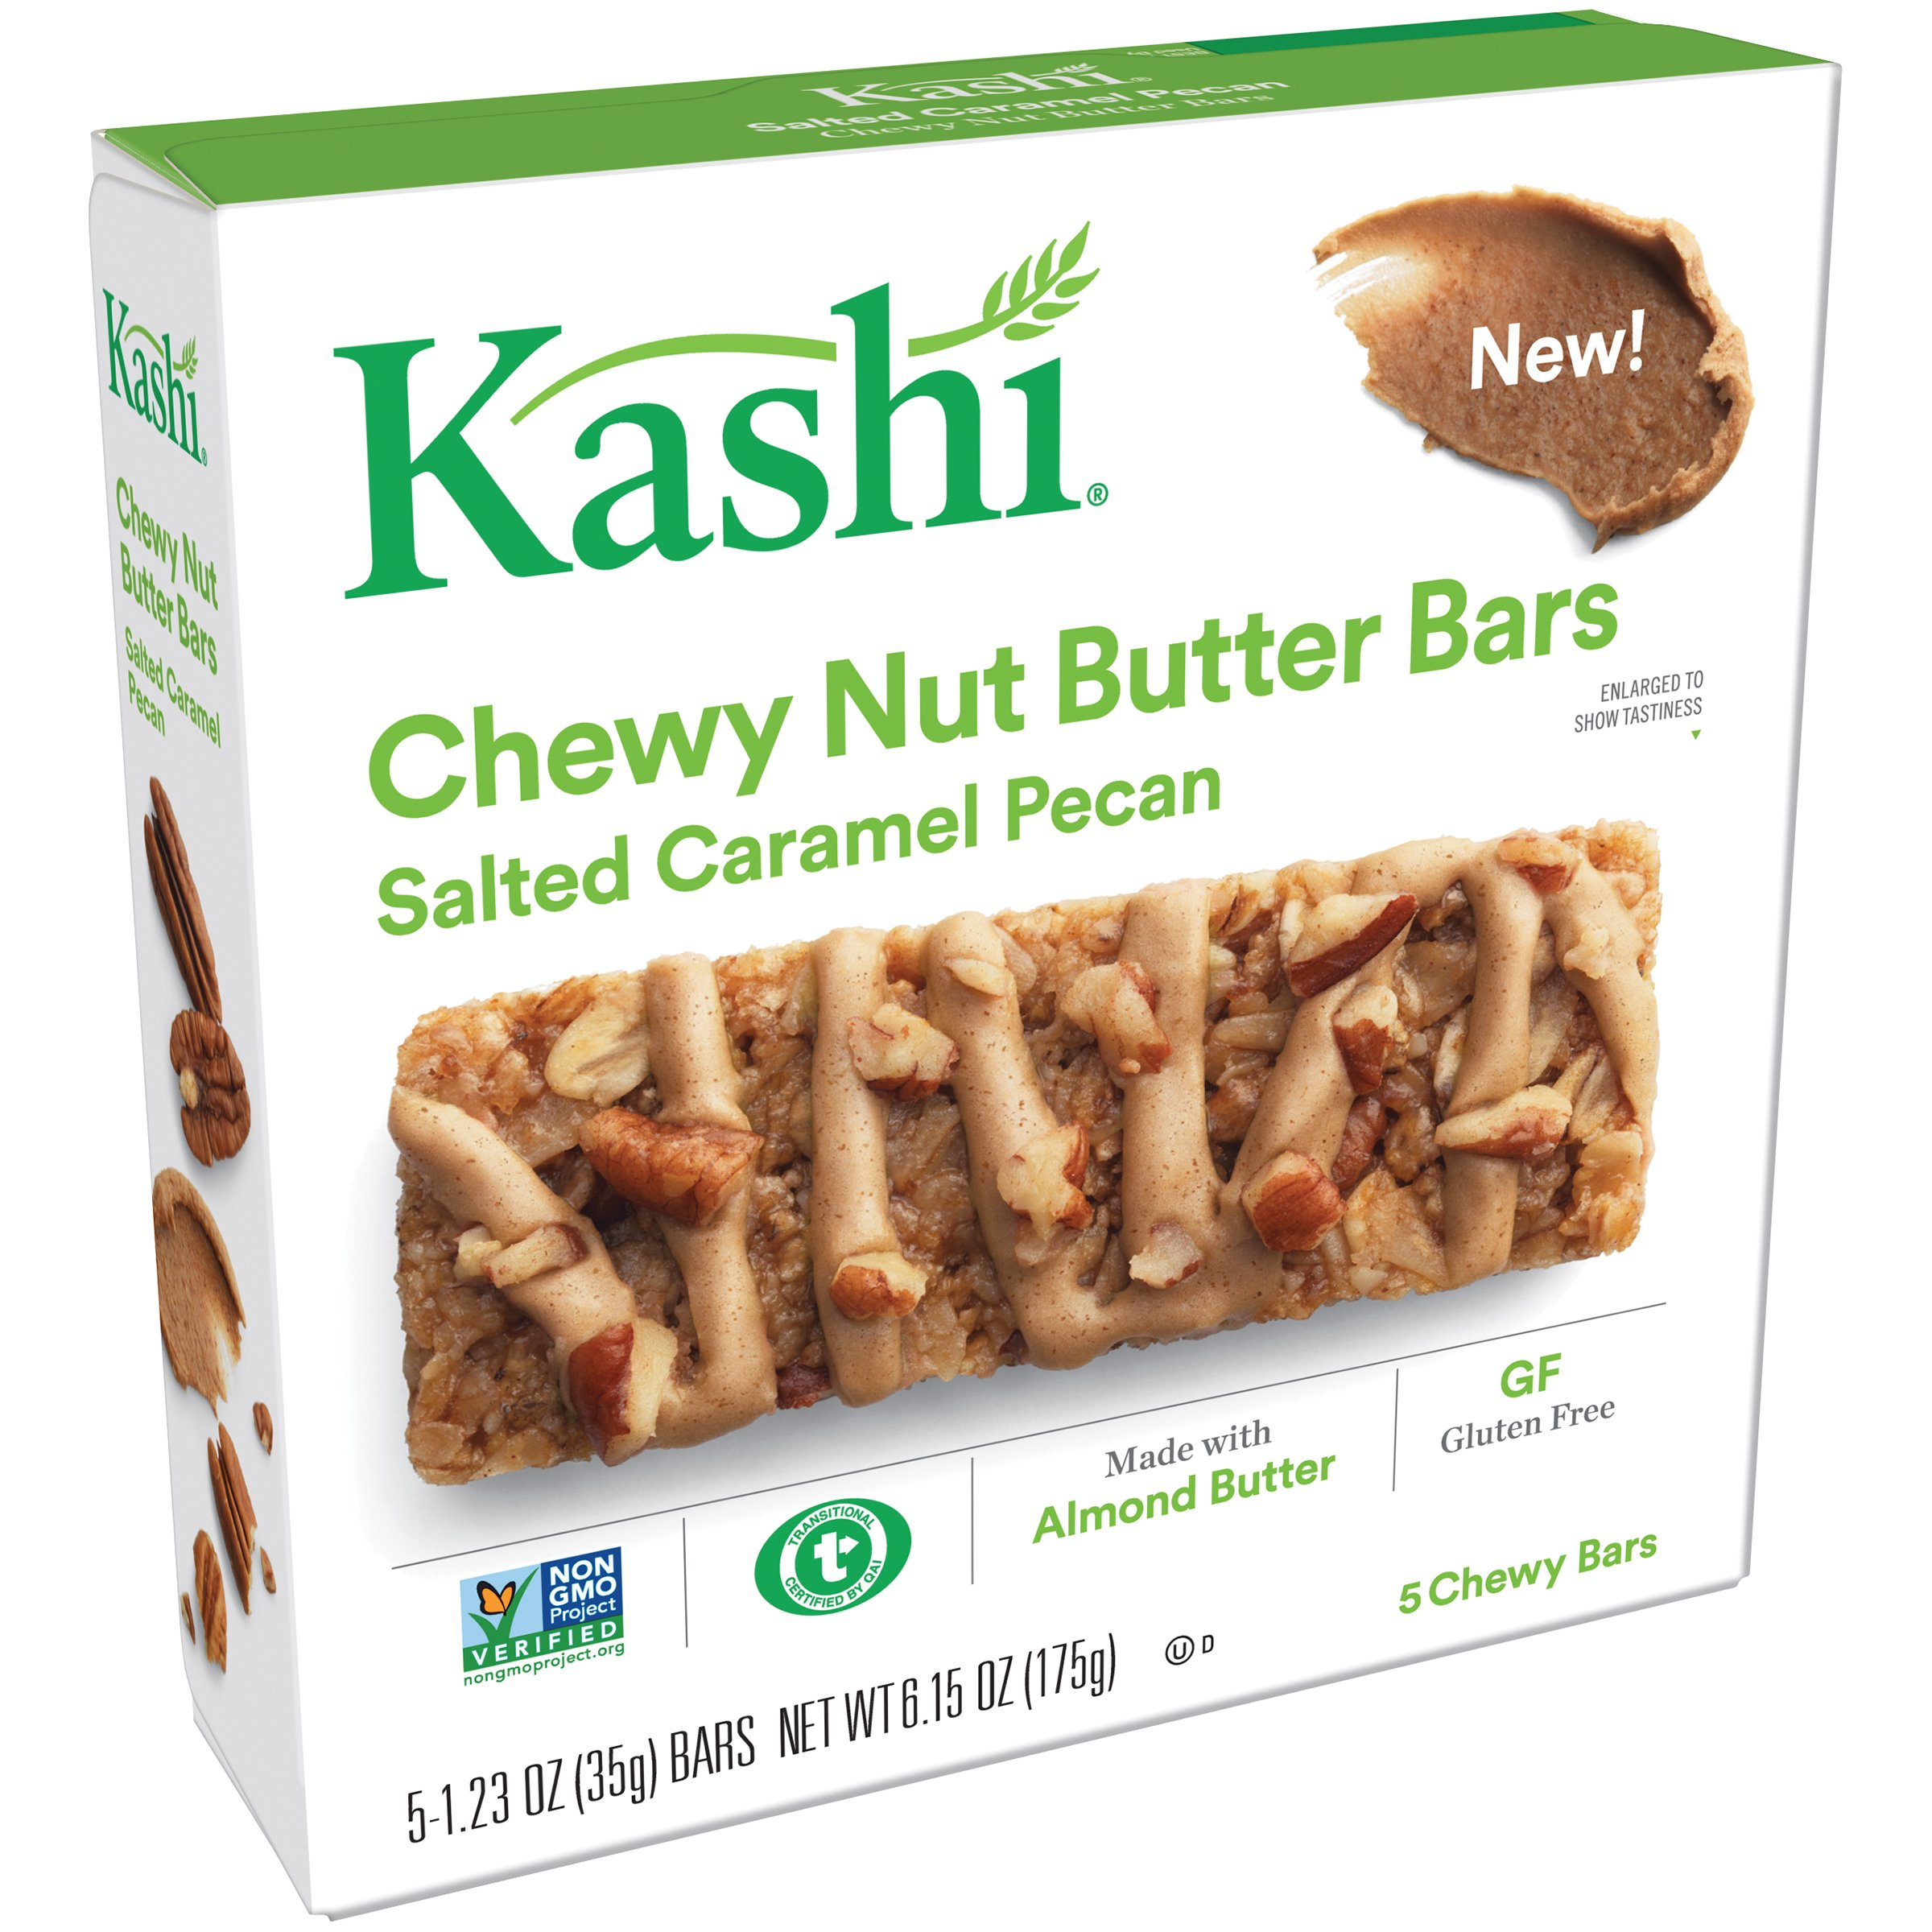 Kashi, Chewy Nut Butter Bars, Salted Caramel Pecan, Gluten Free, Non-GMO Project Verified, 6.15 oz (5 Count)(Pack of 8)